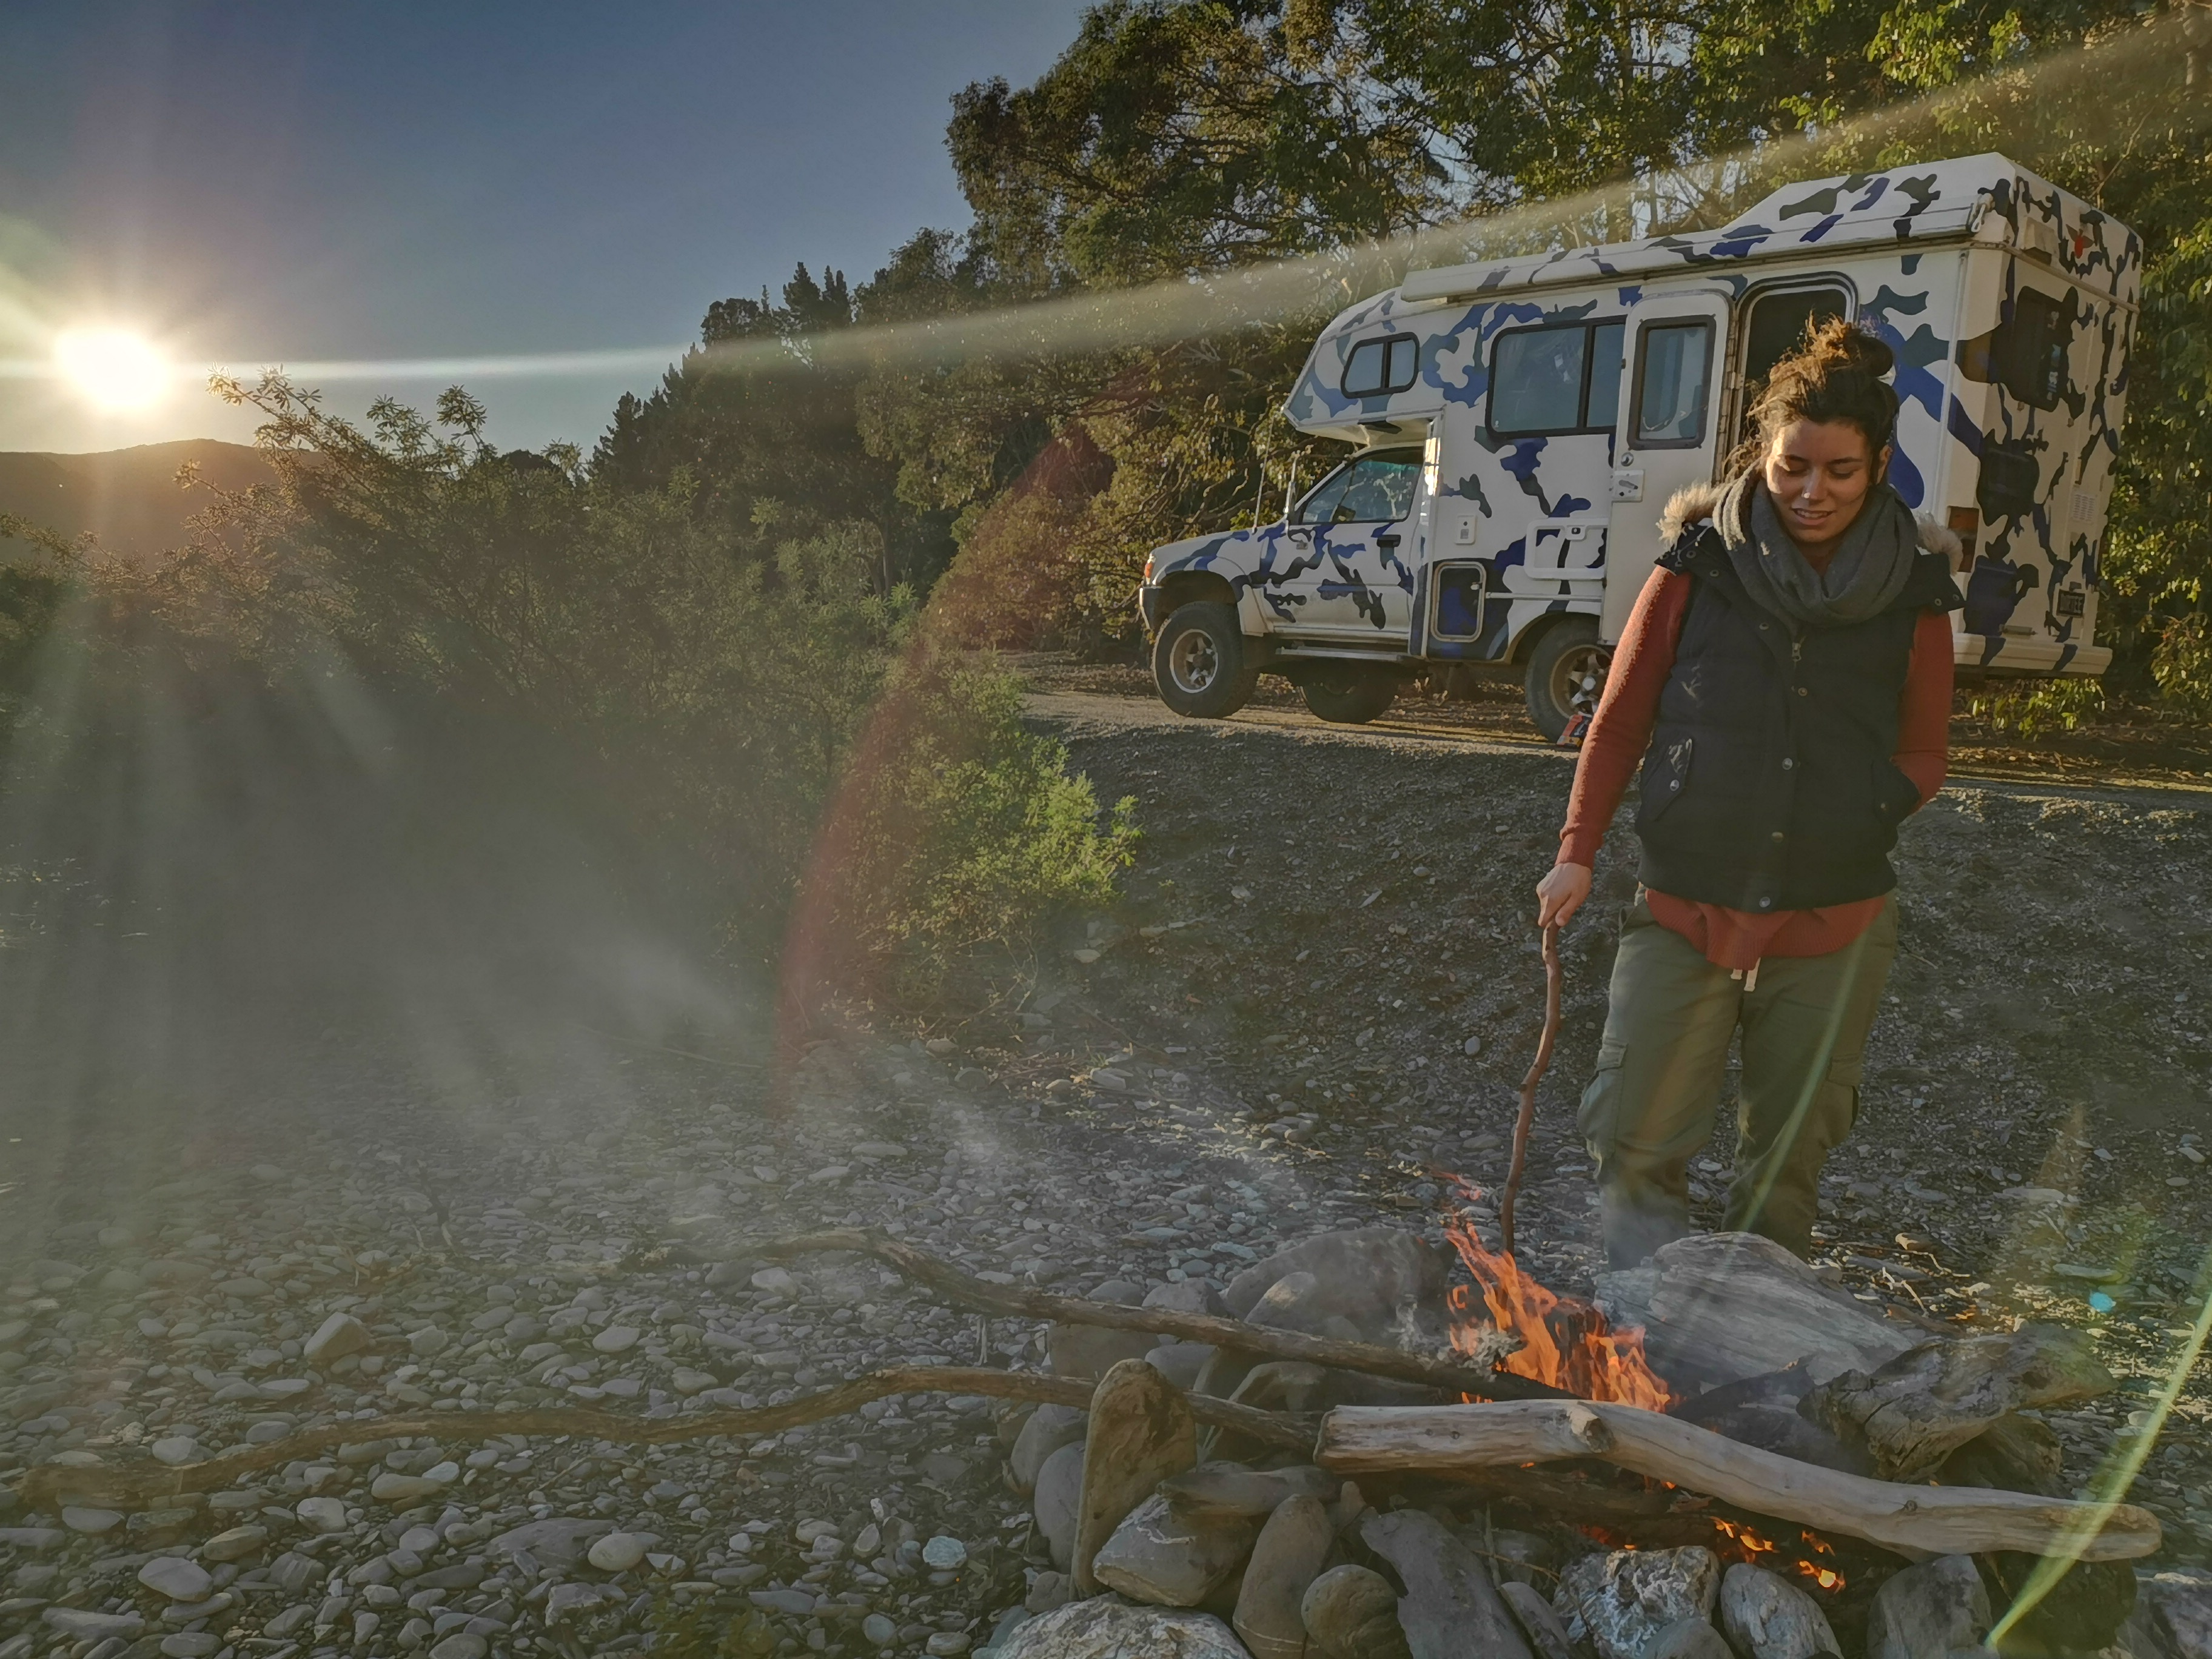 Winter Camping Essentials: All You Need for Camping in the